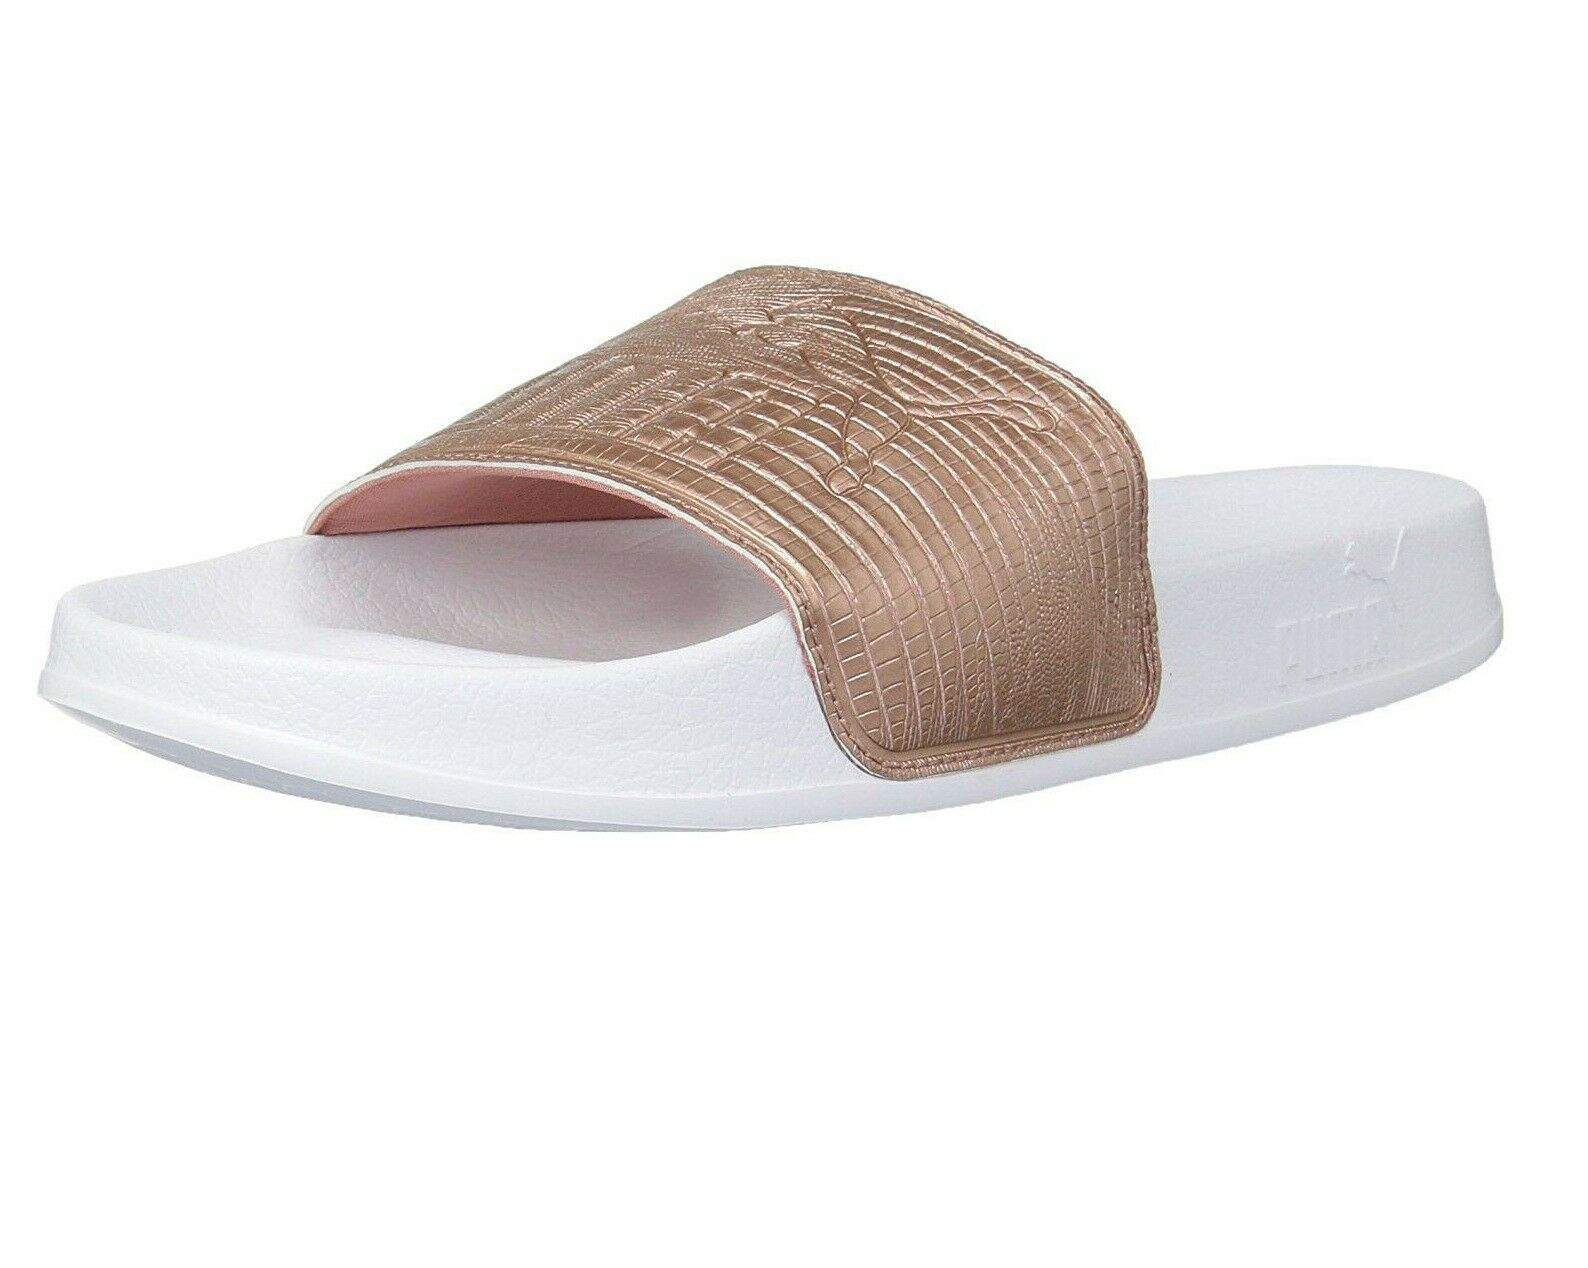 Primary image for Puma Leadcat Leather Copper Rose White Womens Sandal Slides 365693 01